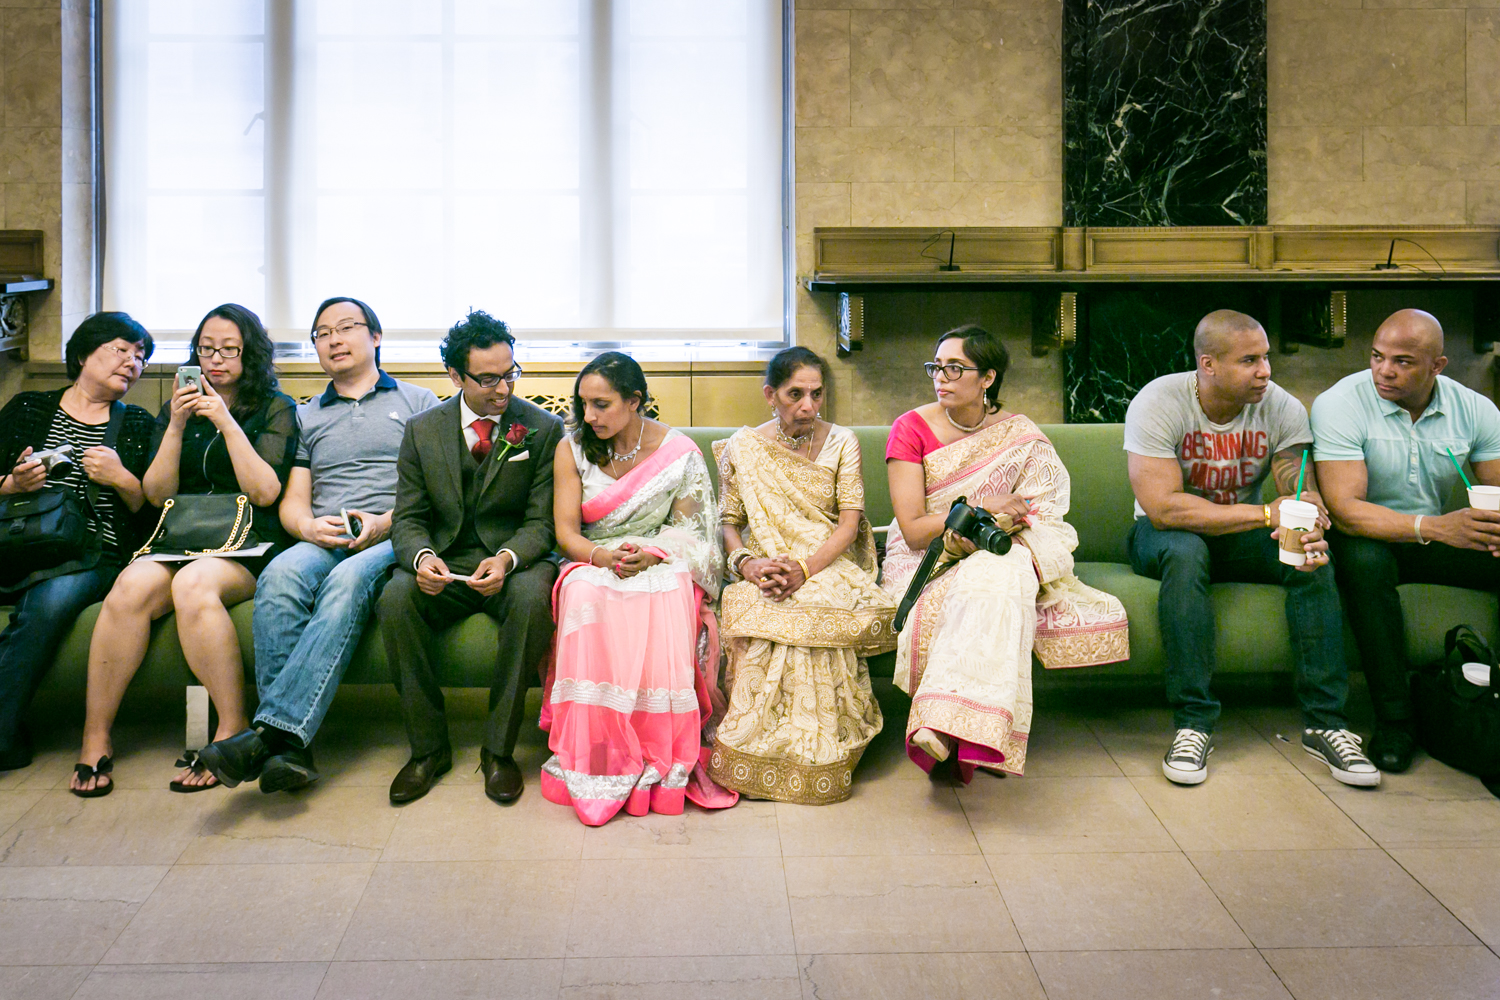 Bridal party wearing traditional saris waiting on bench at a NYC City Hall Indian wedding